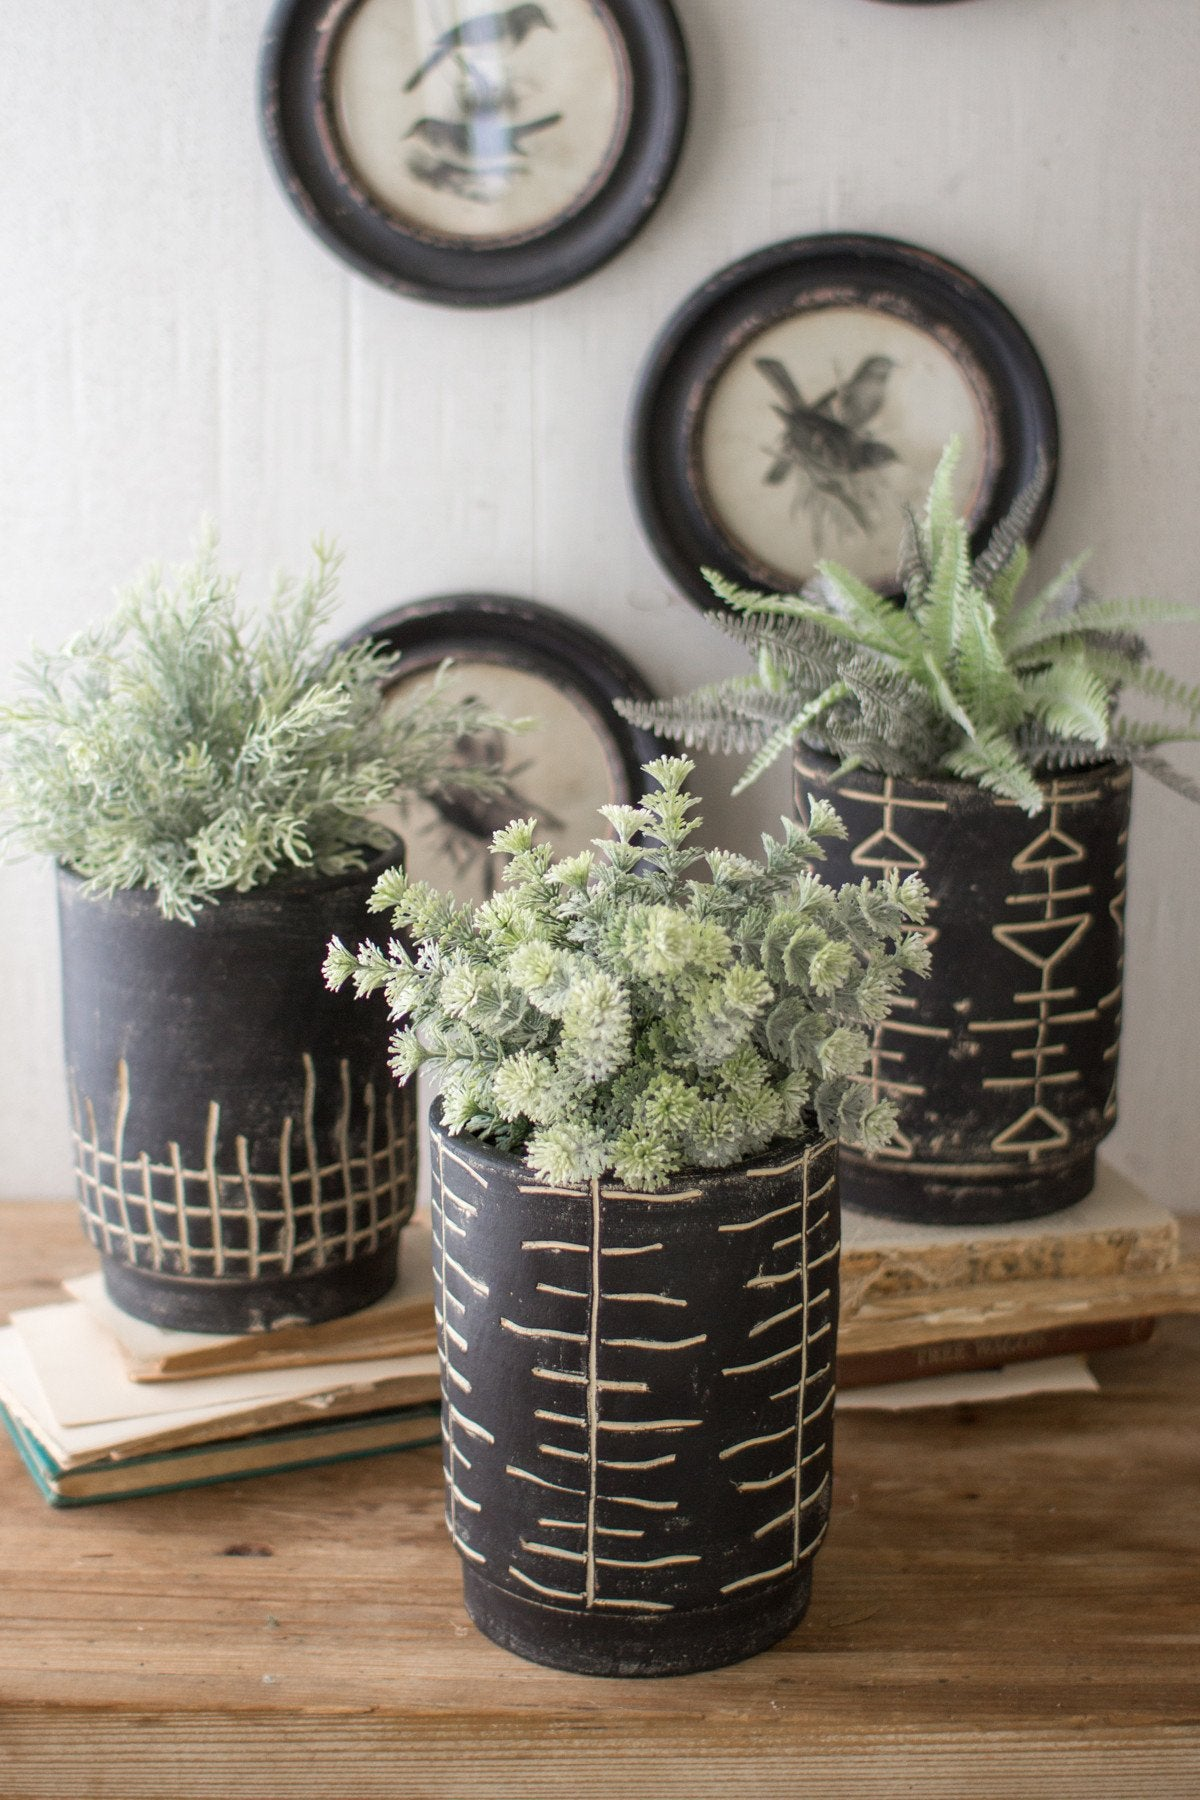 Kalalou Black And White Clay Planters - Set Of 3